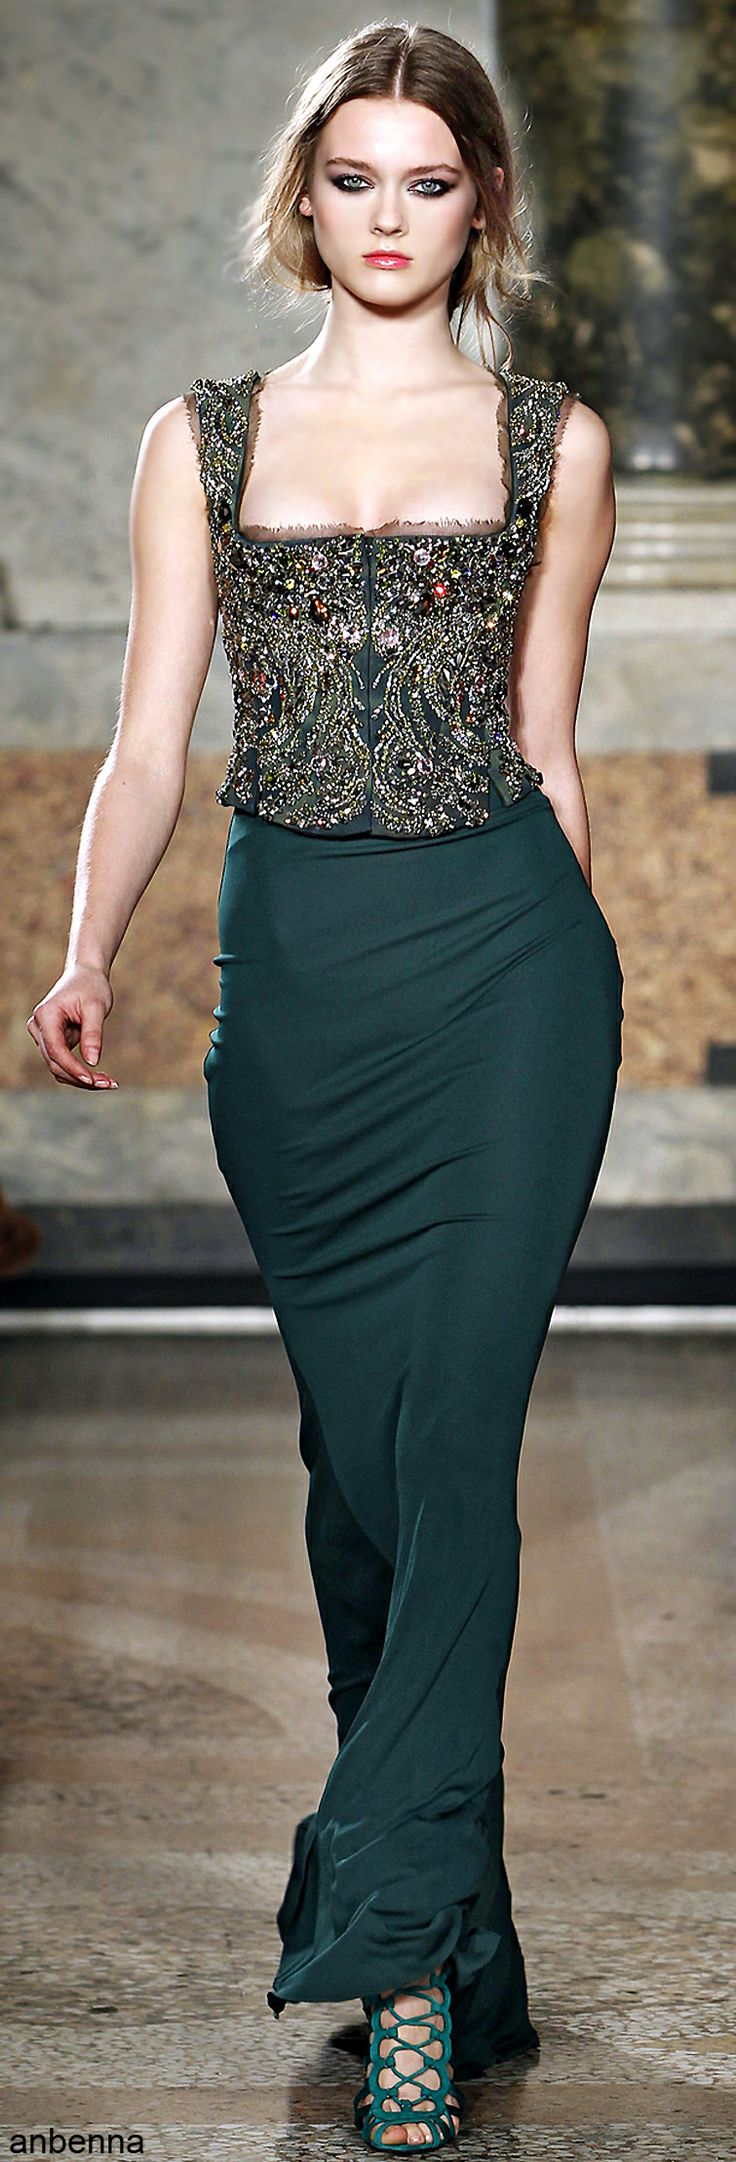 Emilio Pucci 2011 - green gown